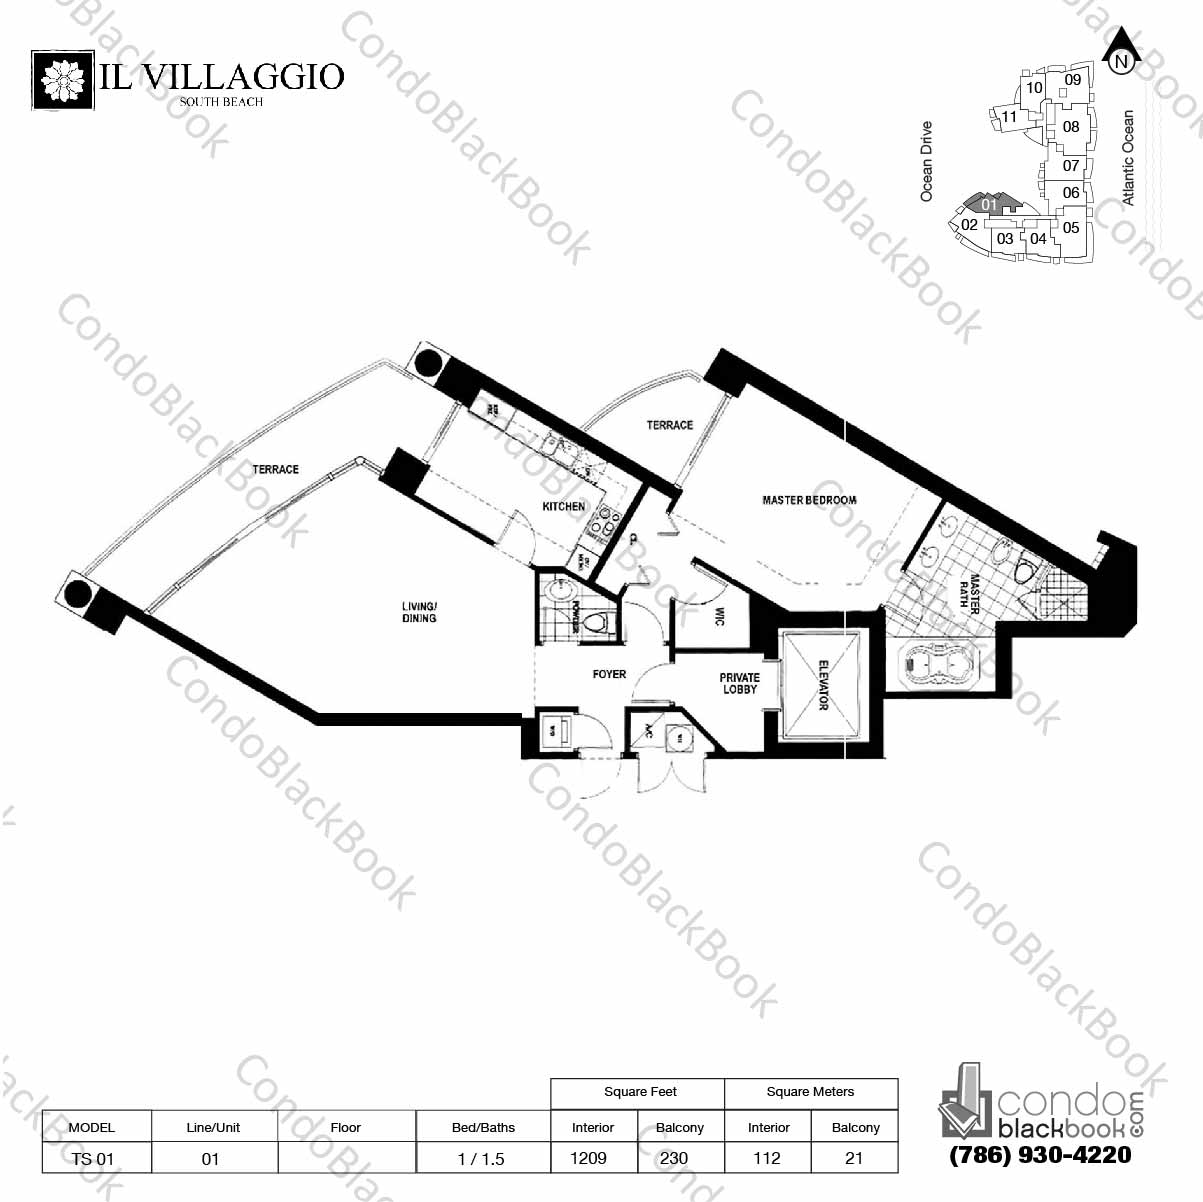 Floor plan for Il Villaggio South Beach Miami Beach, model TS-01, line 01, 1 / 1.5 bedrooms, 1209 sq ft